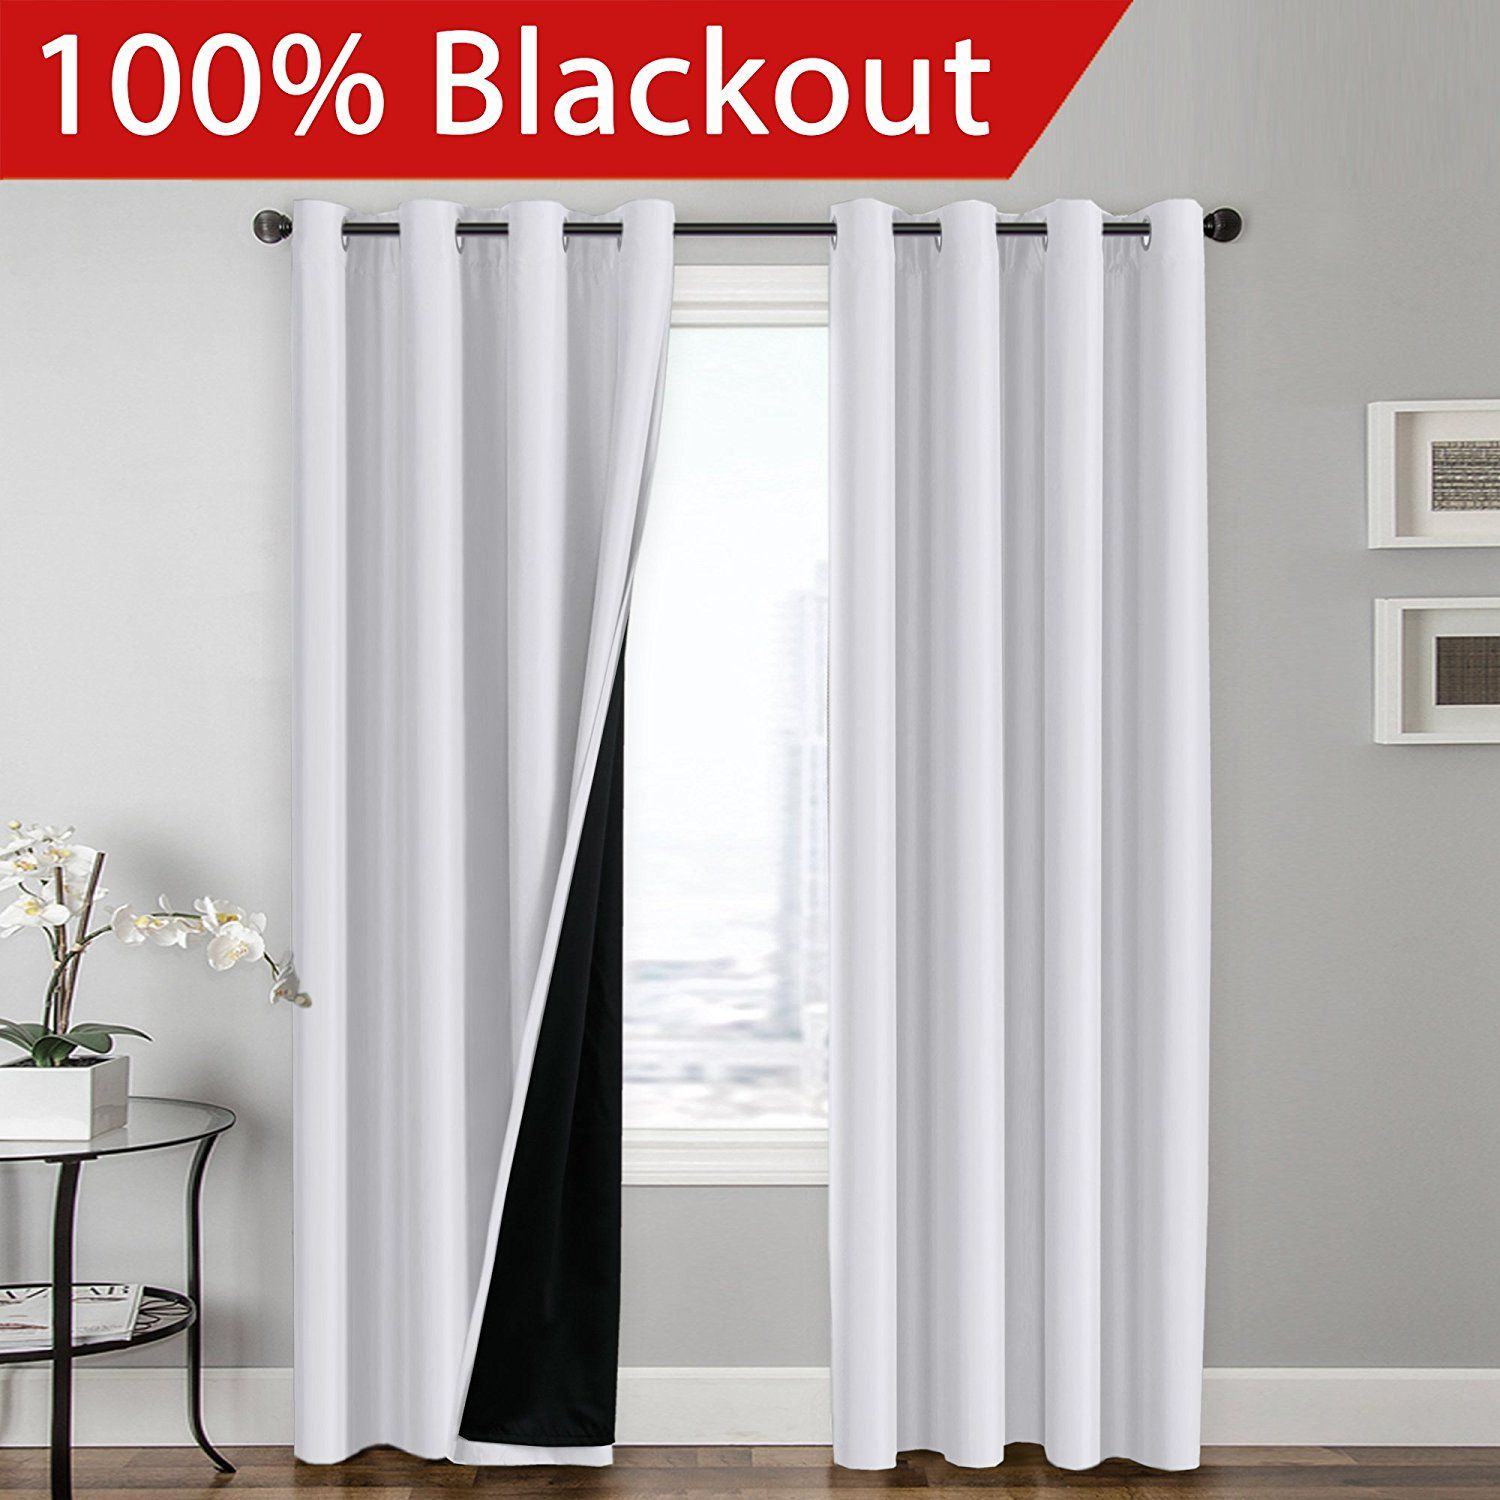 Top 10 Best Blackout Curtains Review Cool Curtains Stylish Curtains White Blackout Curtains